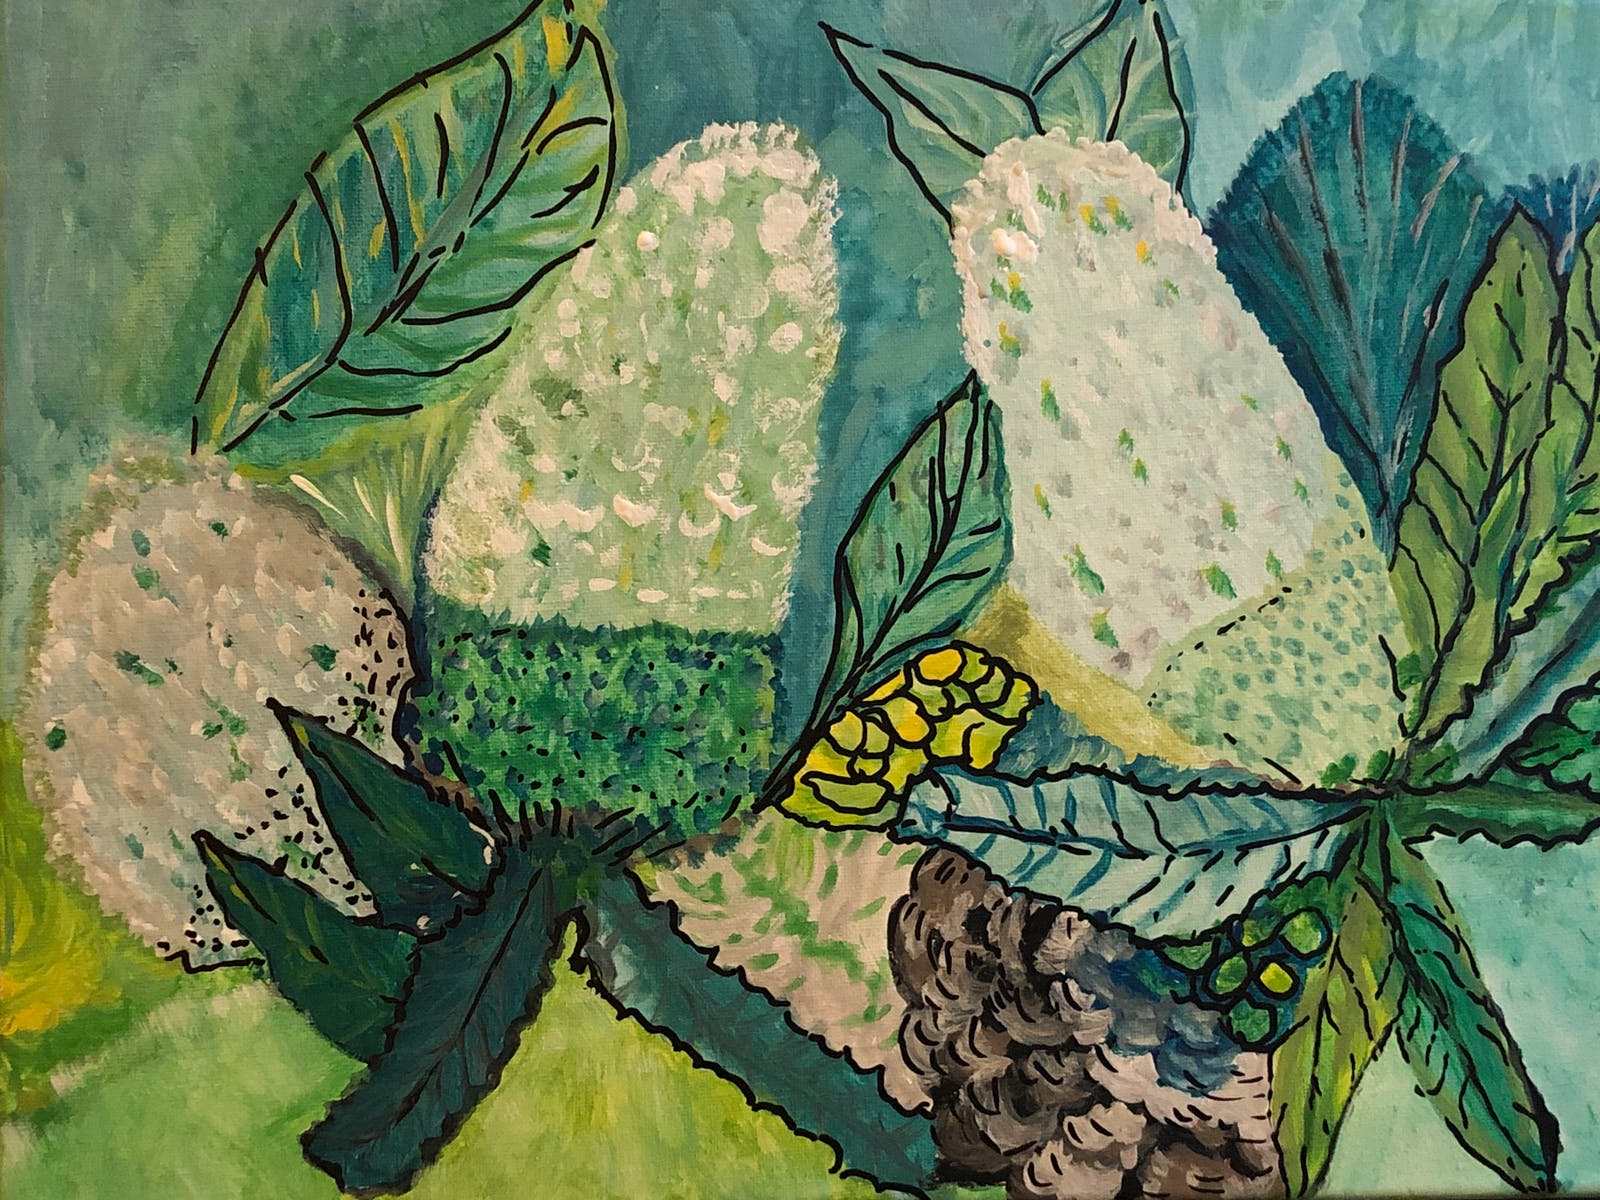 Image for Beginner's Acrylic Painting Class: Banksias